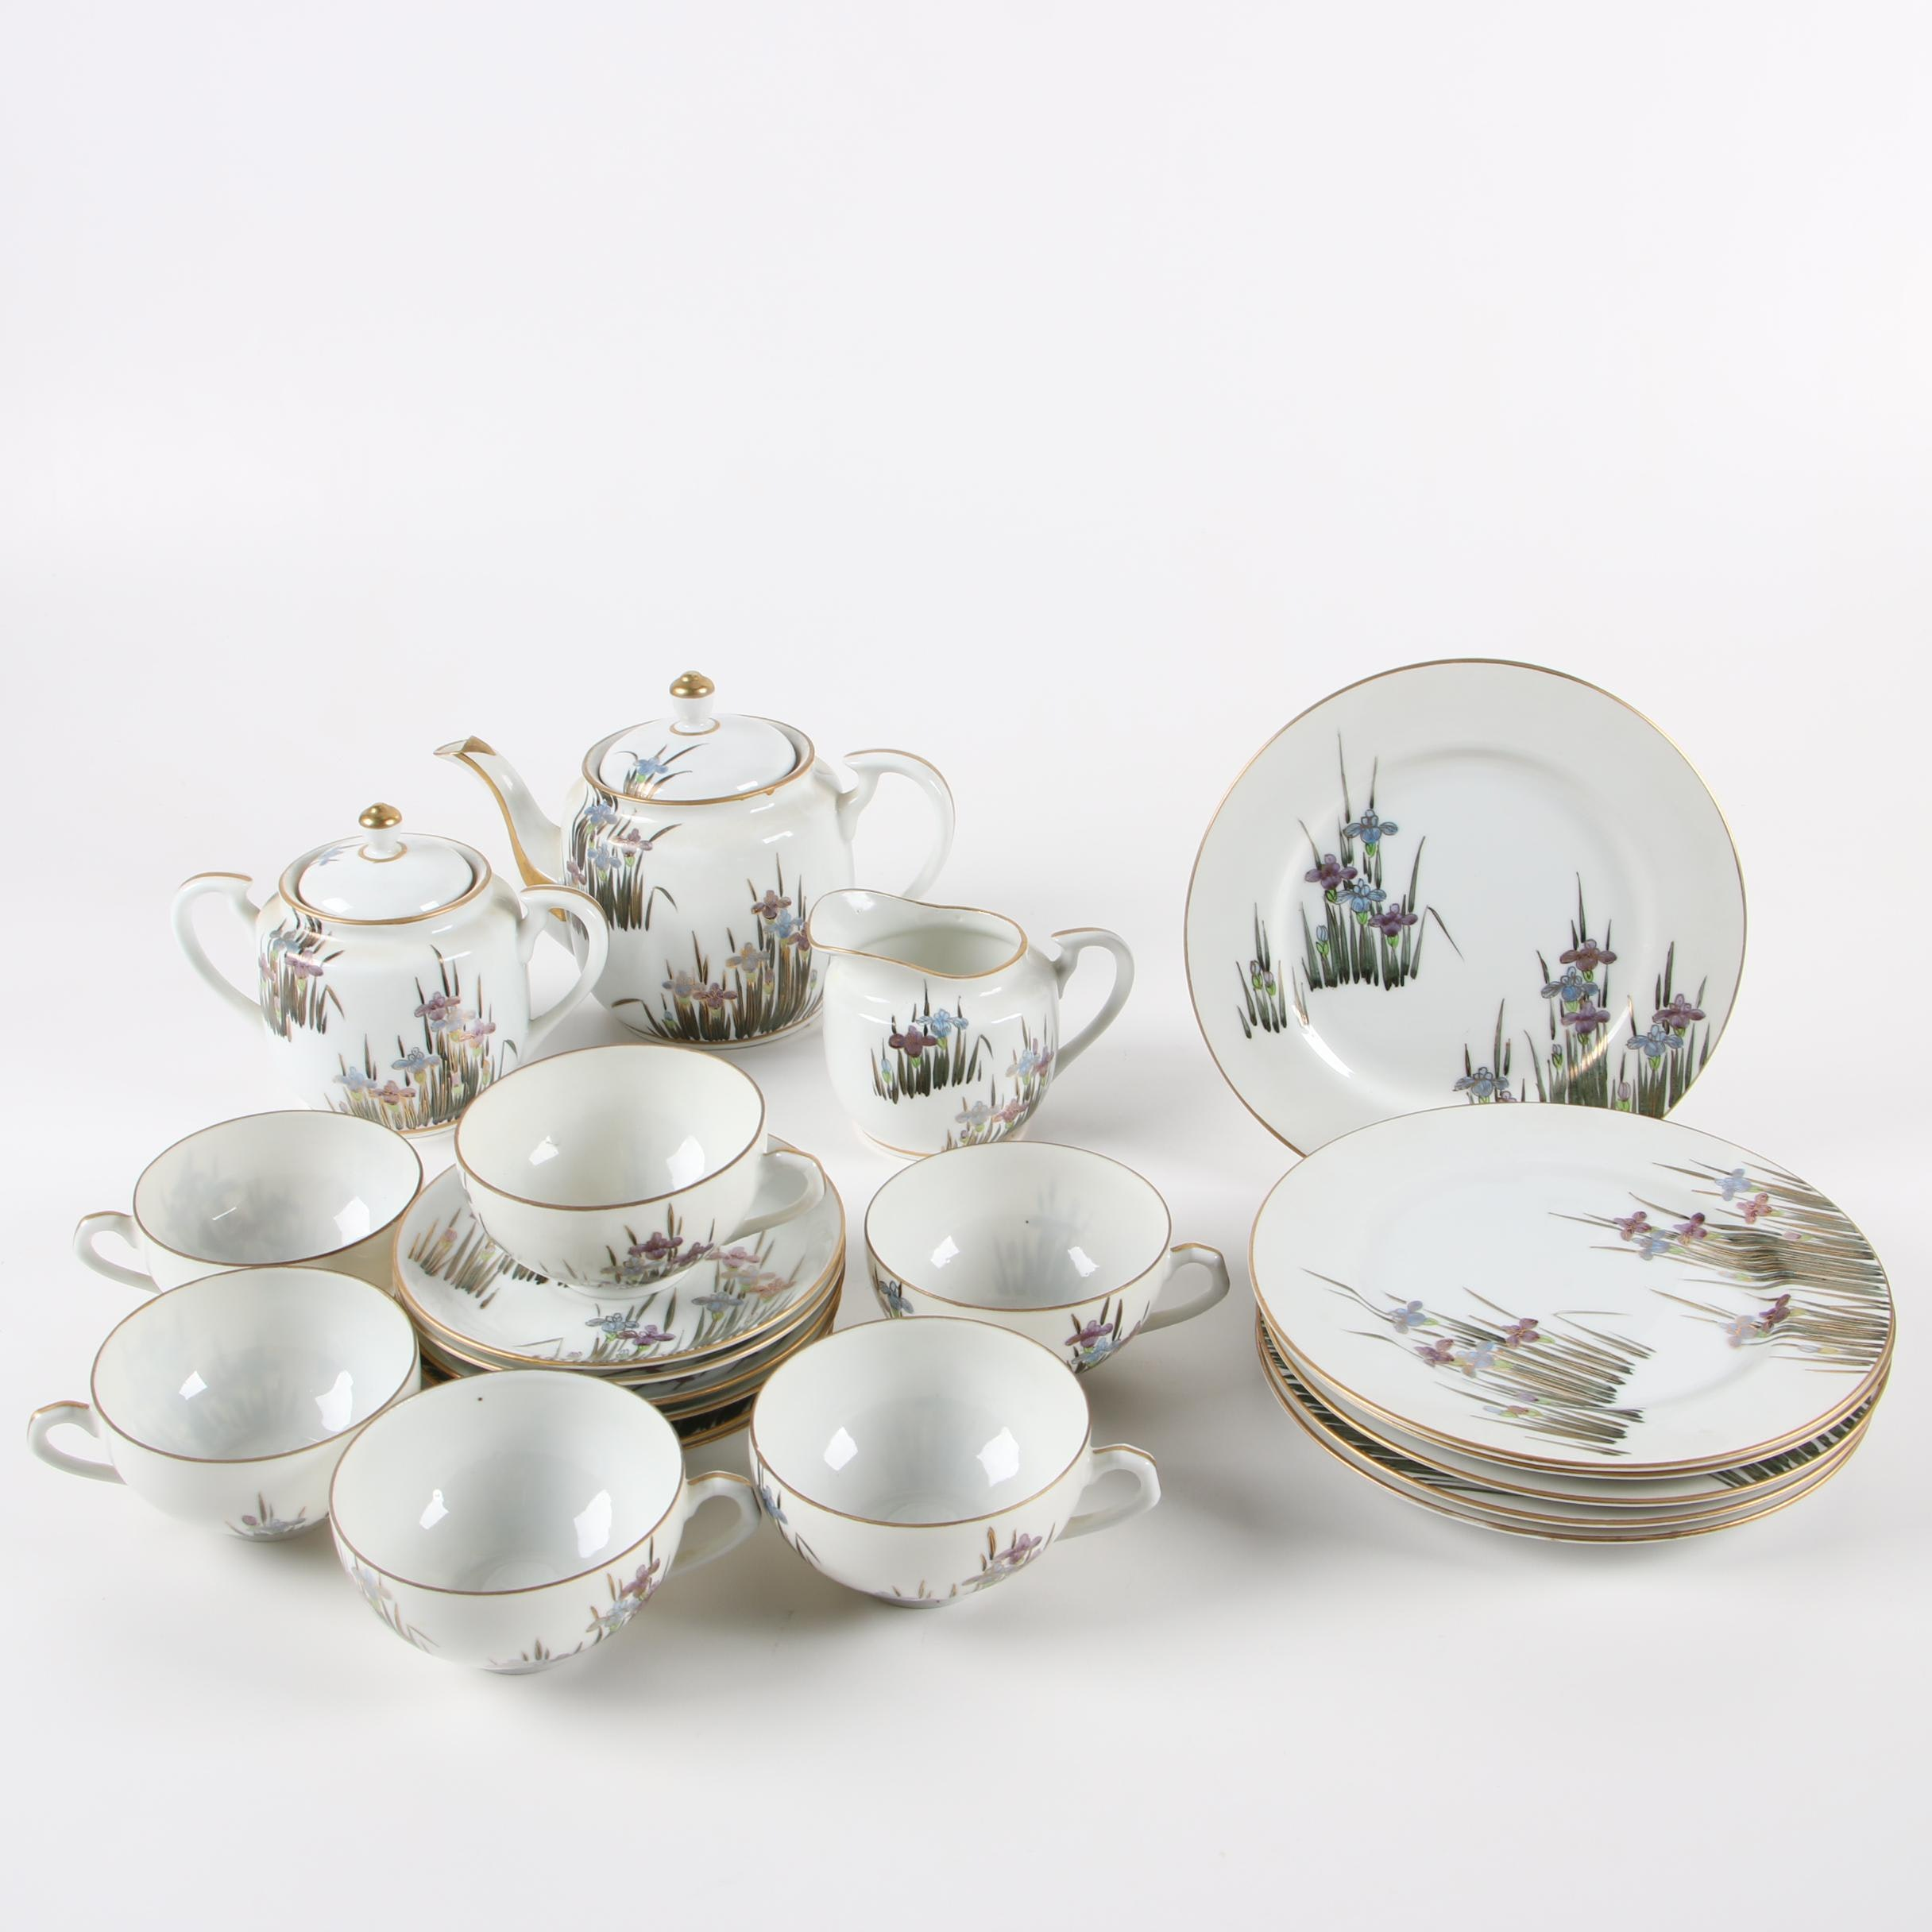 Asian Porcelain Tea Service with Lithophane Teacups